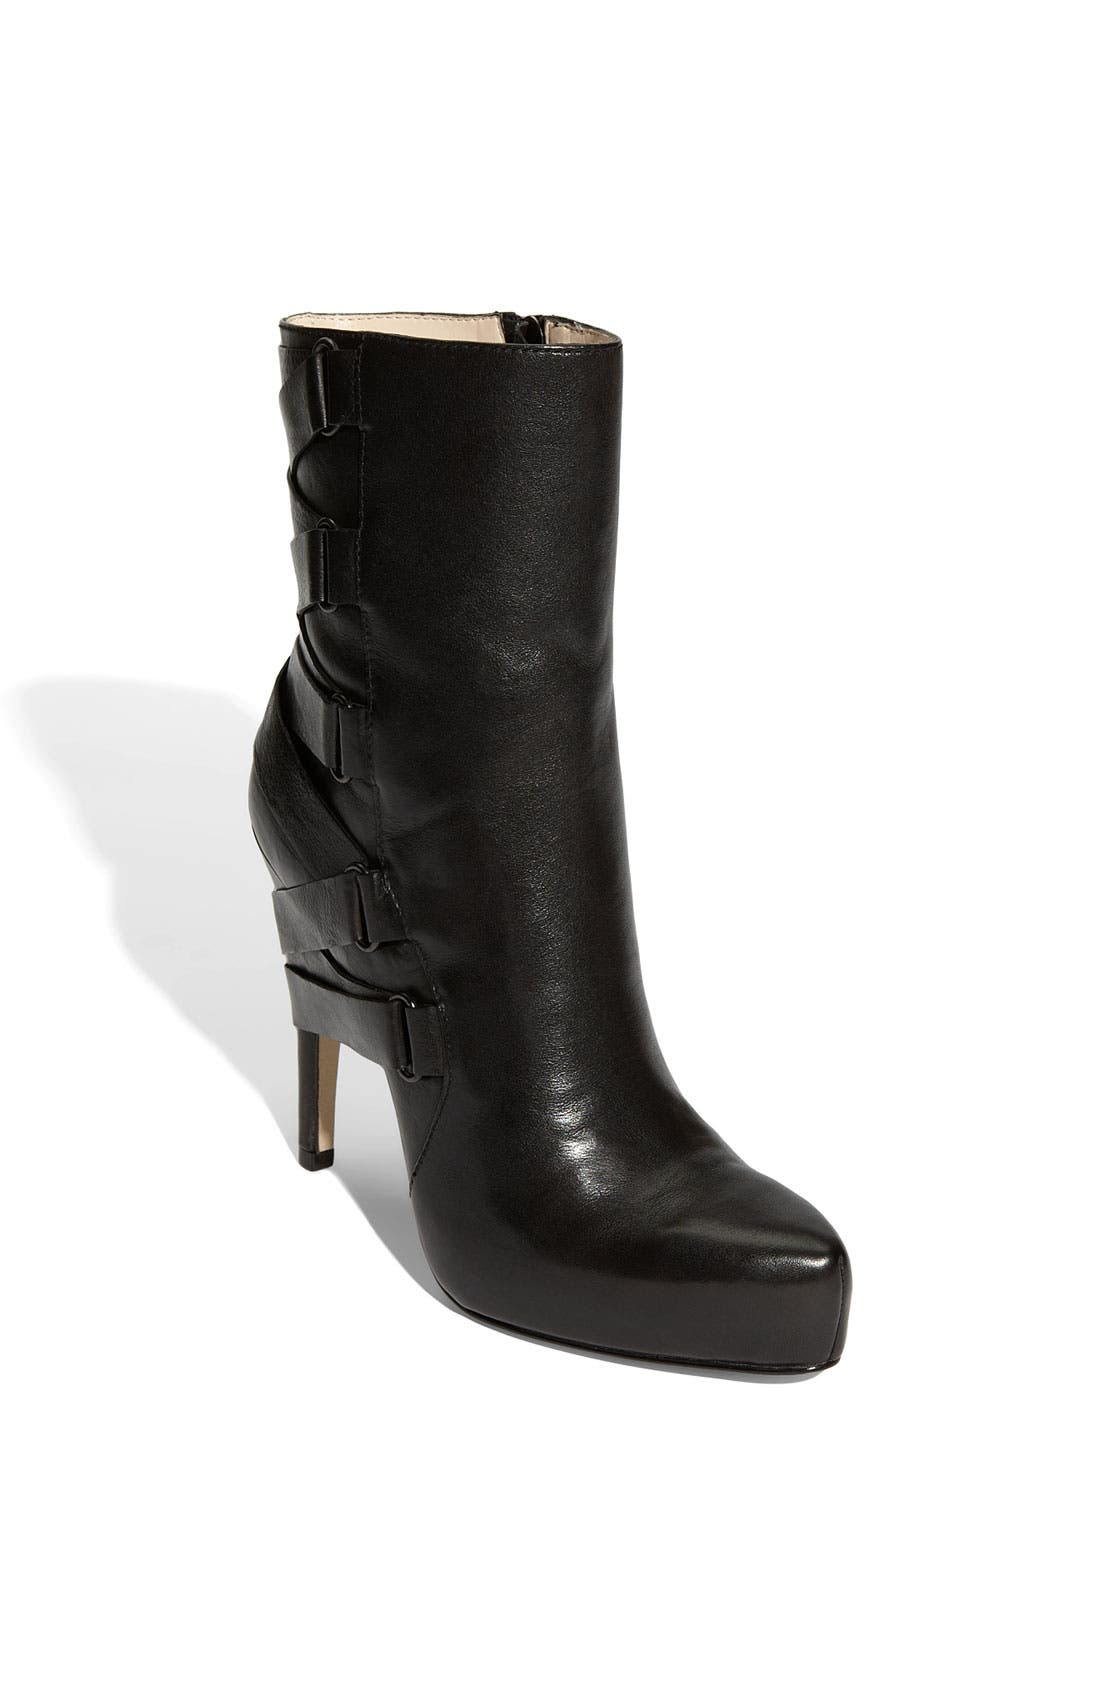 Alternate Image 1 Selected - Boutique 9 'Strut' Ankle Boot